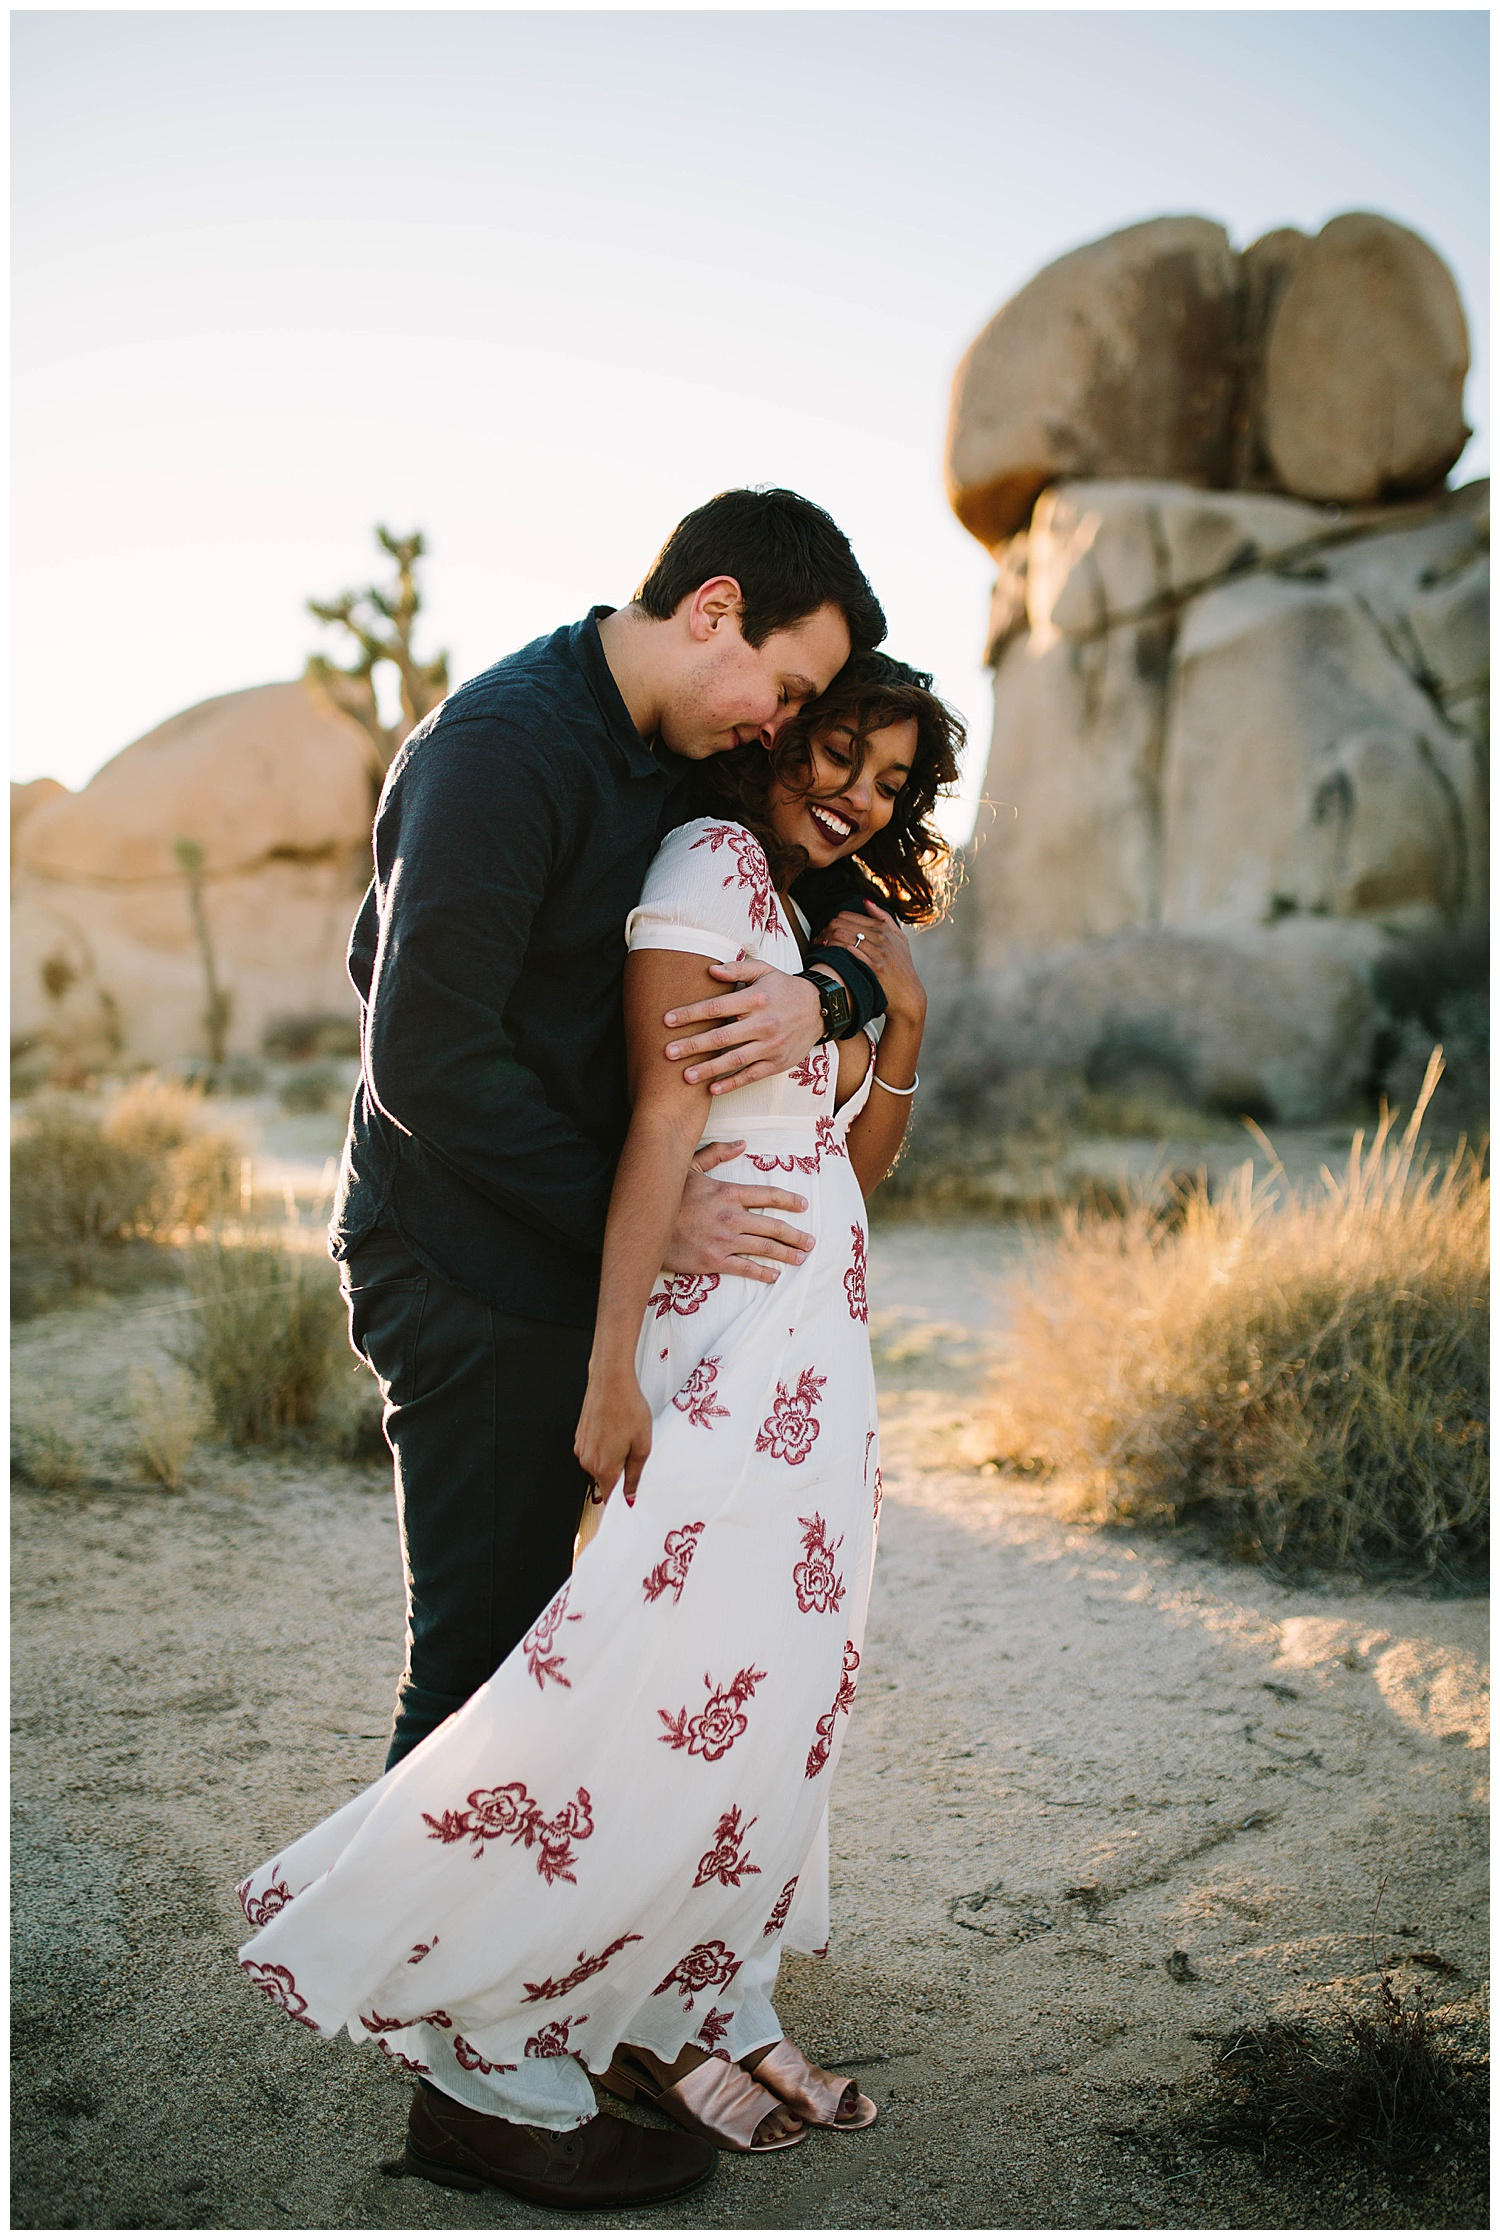 la.lifestyle.photography.session.engaged.malibu.joshuatree.kendralynnephotography-51.jpg